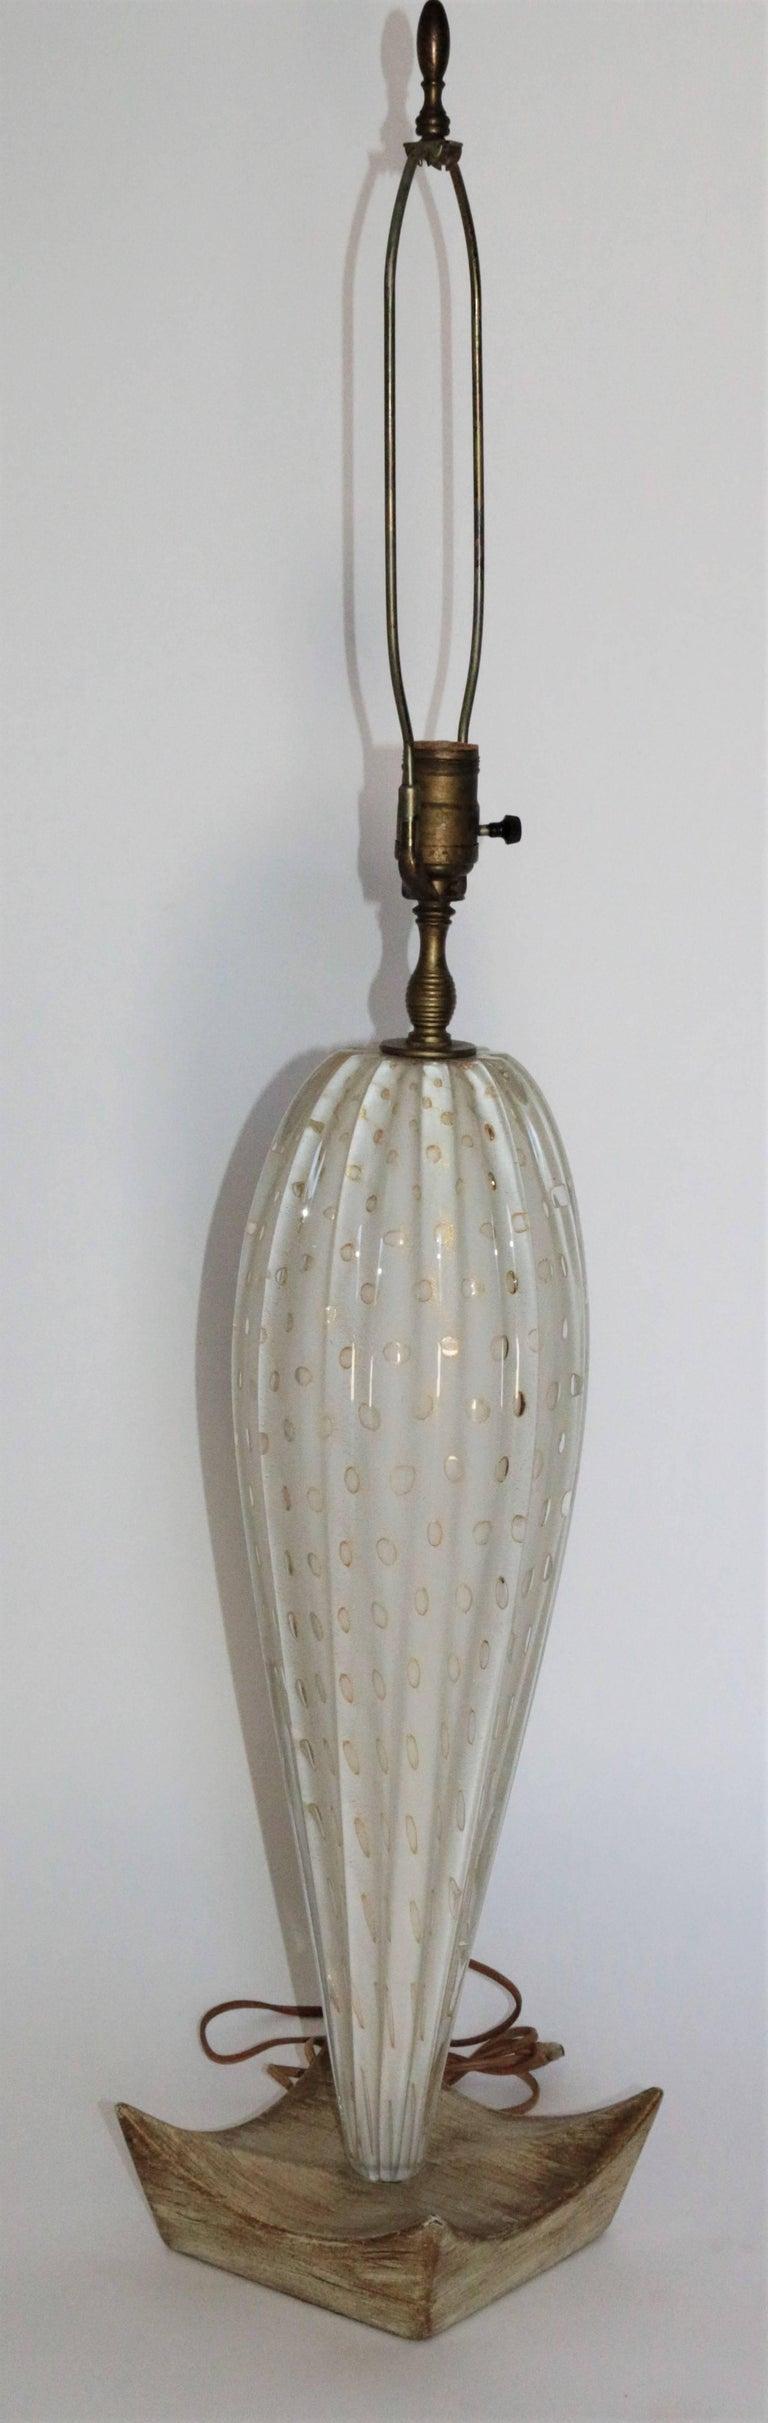 Pair of White Mid-Century Murano Lamps with a Unique Wooden Base and Gold Accent 4